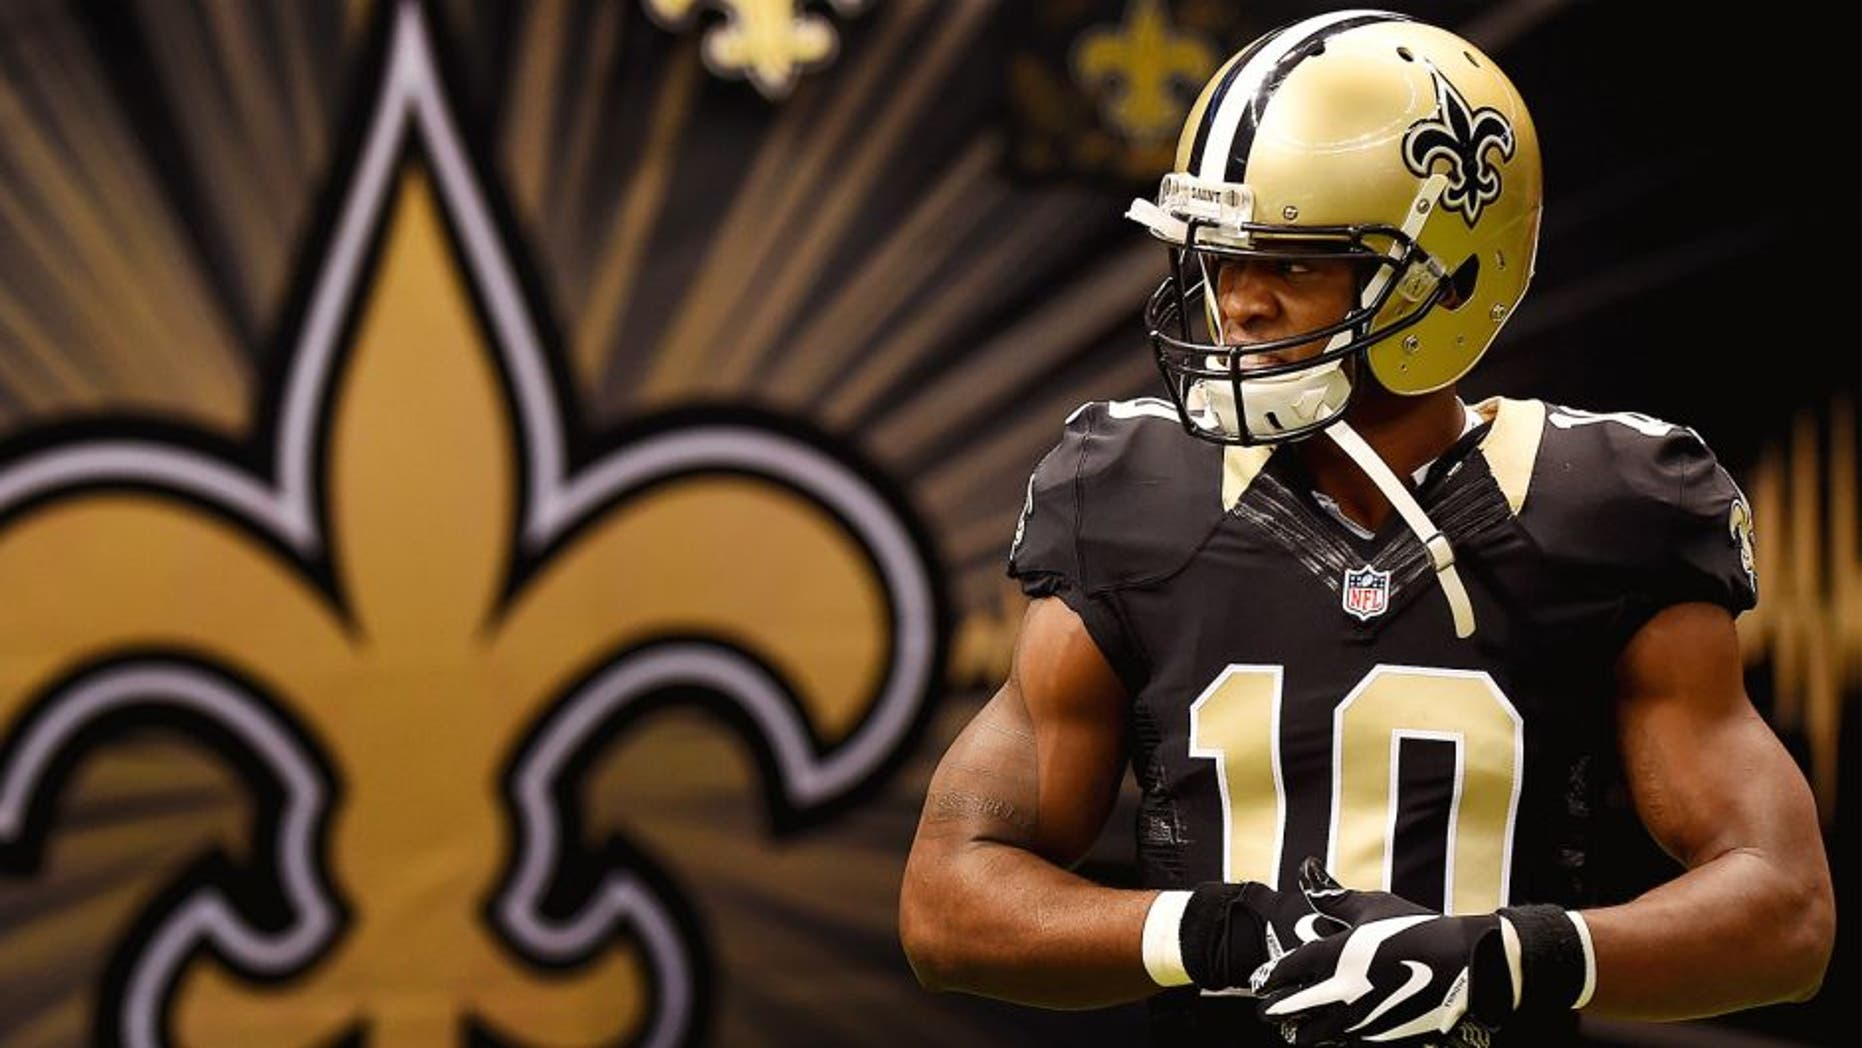 NEW ORLEANS, LA - NOVEMBER 16: Brandin Cooks #10 of the New Orleans Saints runs onto the field for warm-up prior to start of the game against the Cincinnati Bengals at Mercedes-Benz Superdome on November 16, 2014 in New Orleans, Louisiana. (Photo by Stacy Revere/Getty Images)